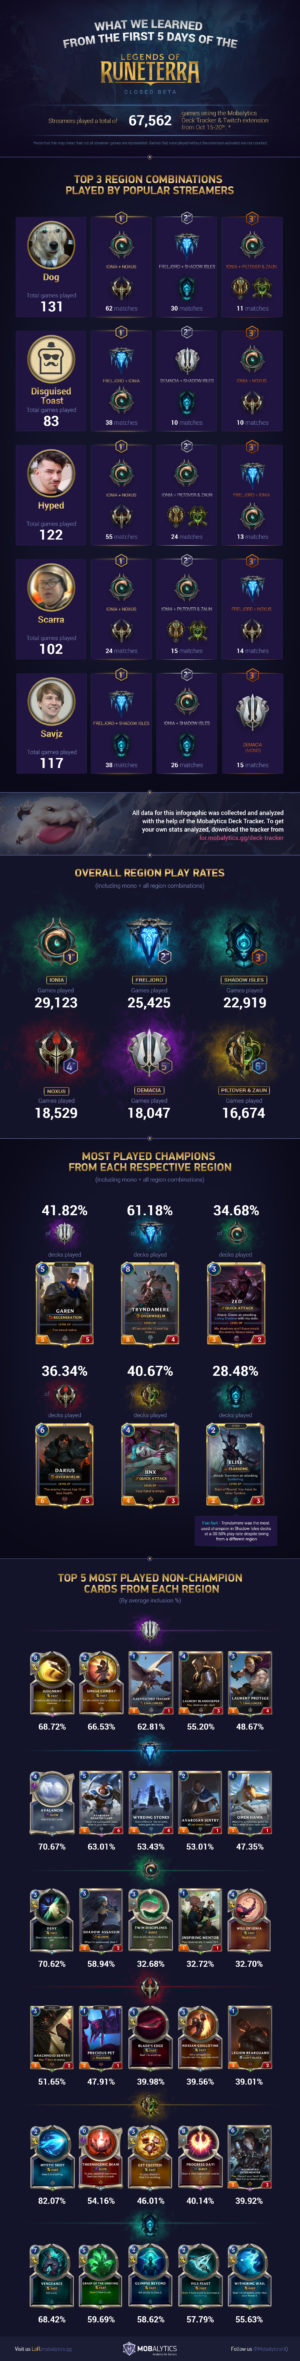 What We Learned from the First 5 Days of the LoR Closed Beta (Infographic)